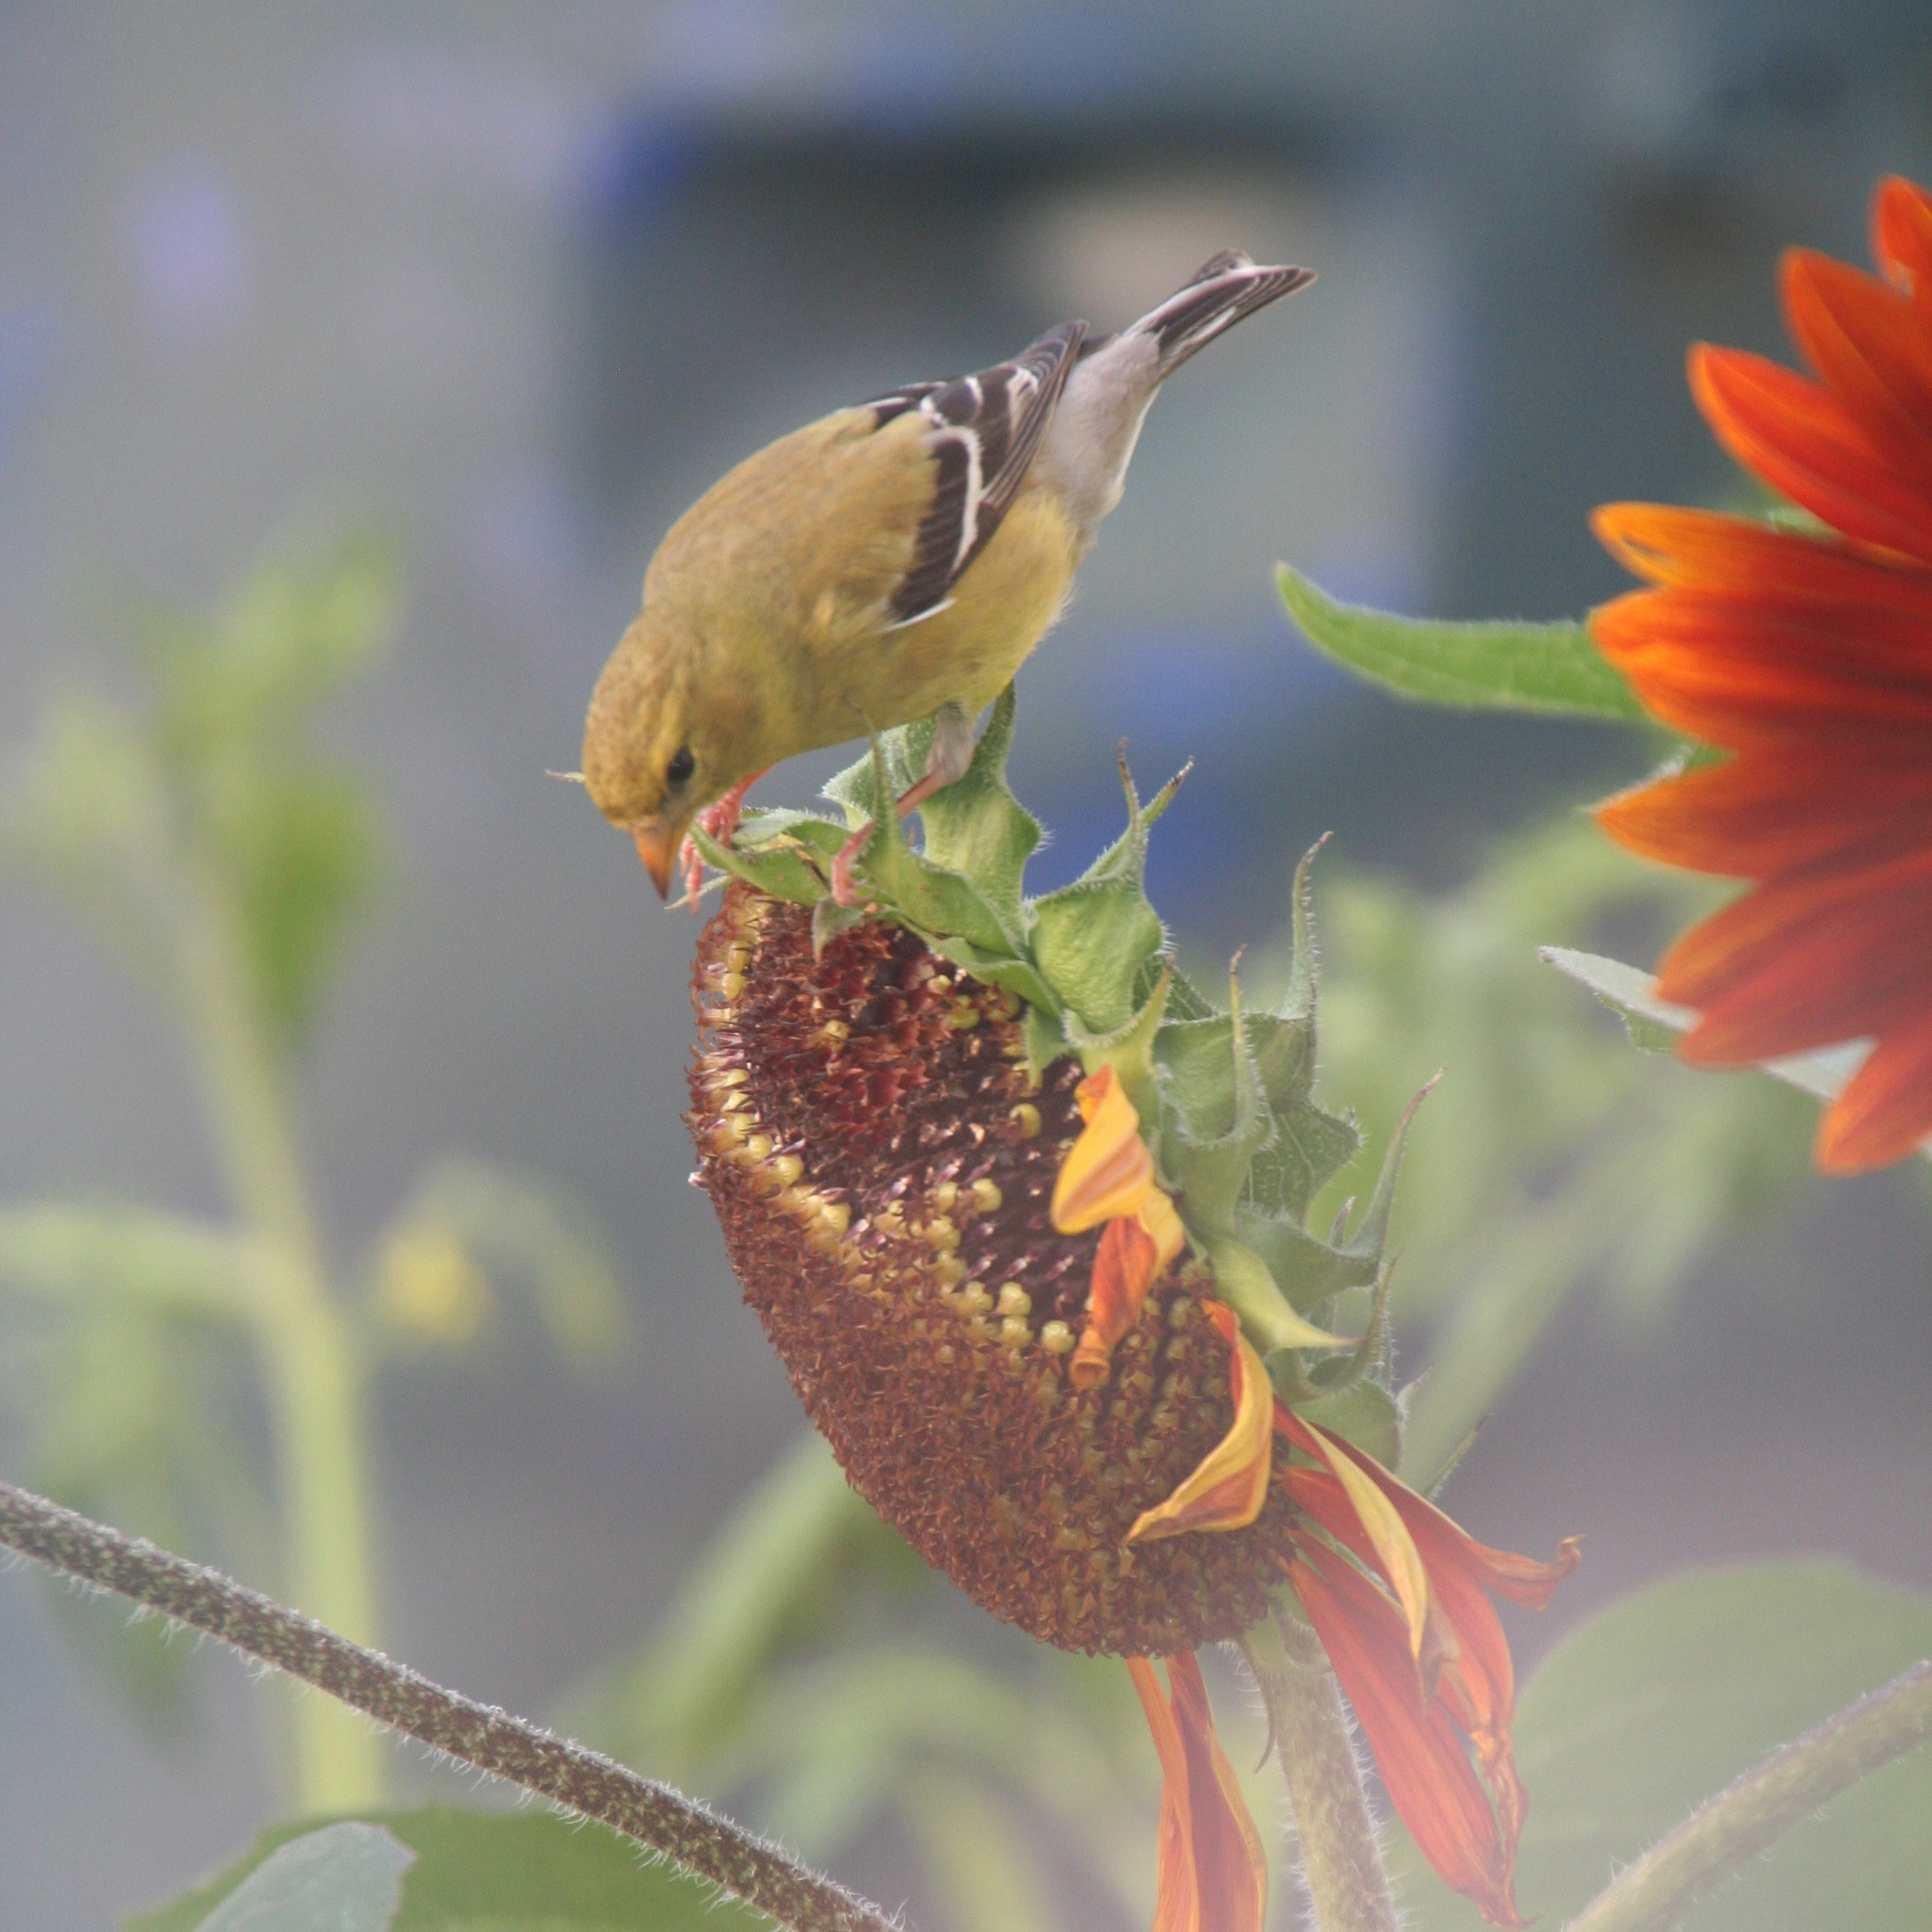 A bird landing on the top of a sunflower - My Sustainable Home Landscapes